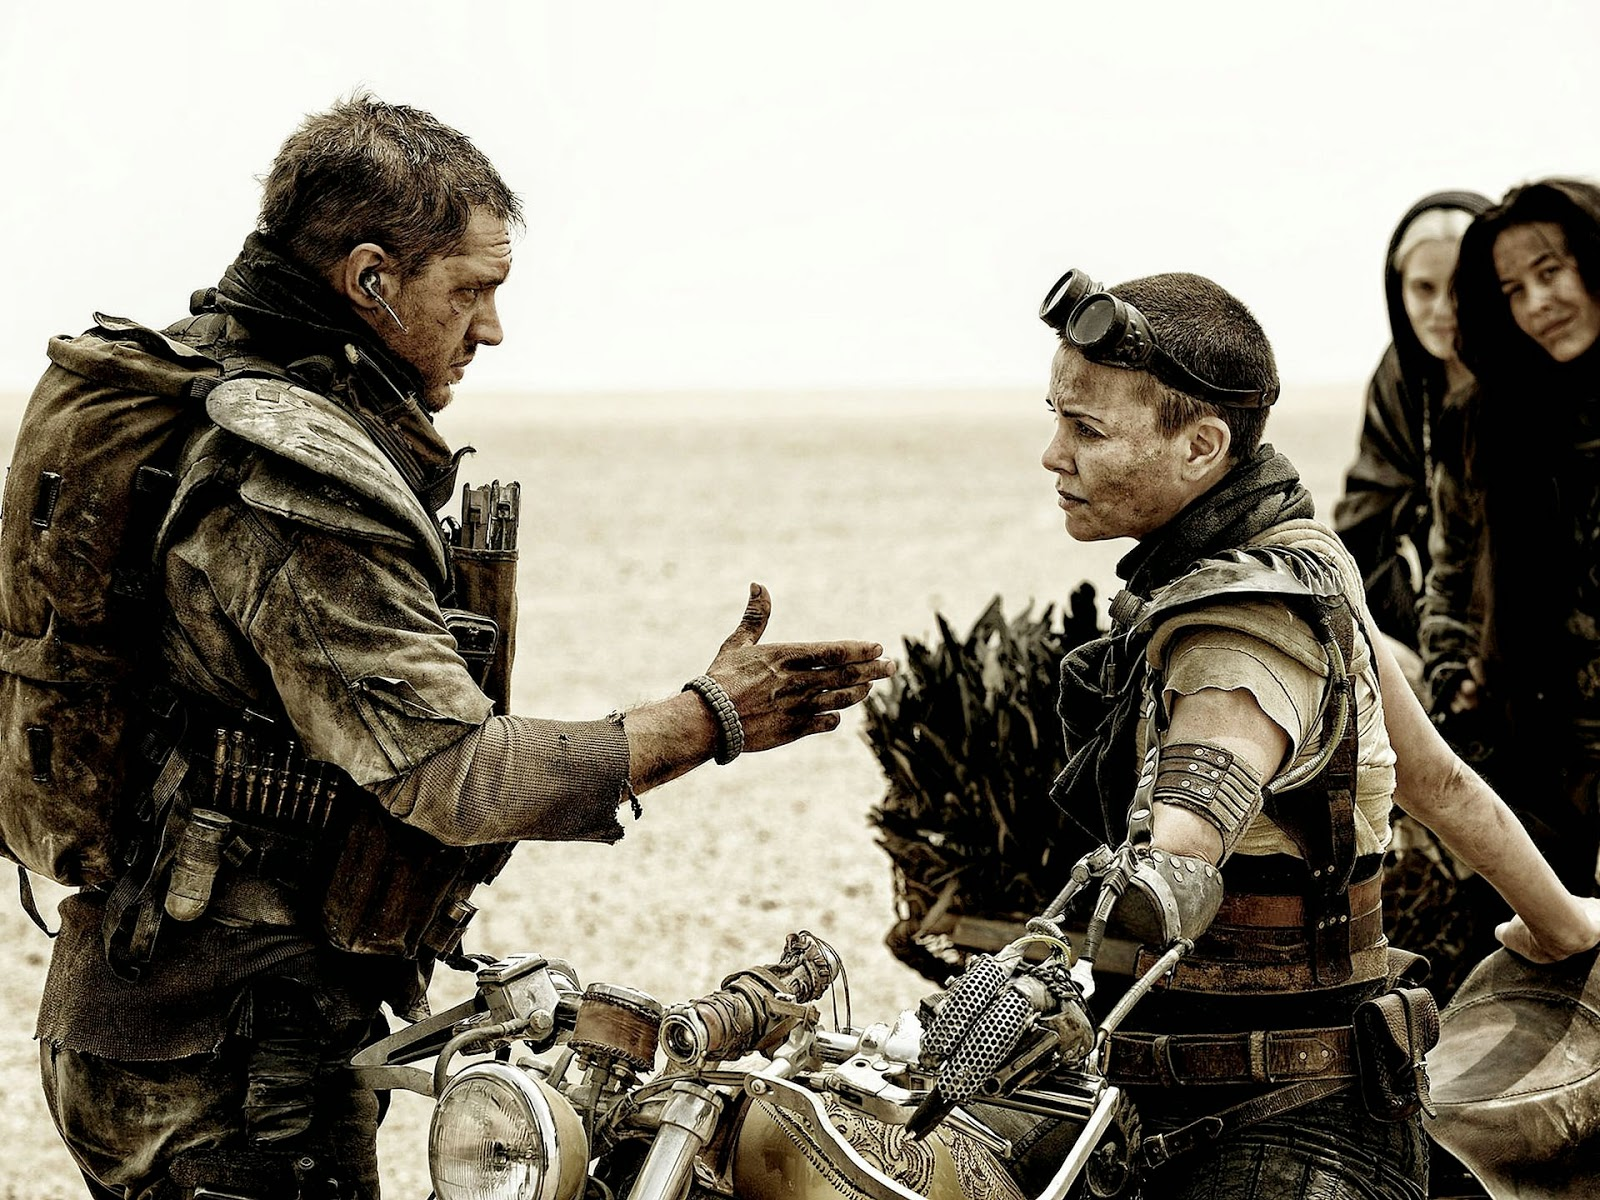 635560680919636292-MAD-MAX-FURY-ROAD-MOV-jy-1019-.JPG